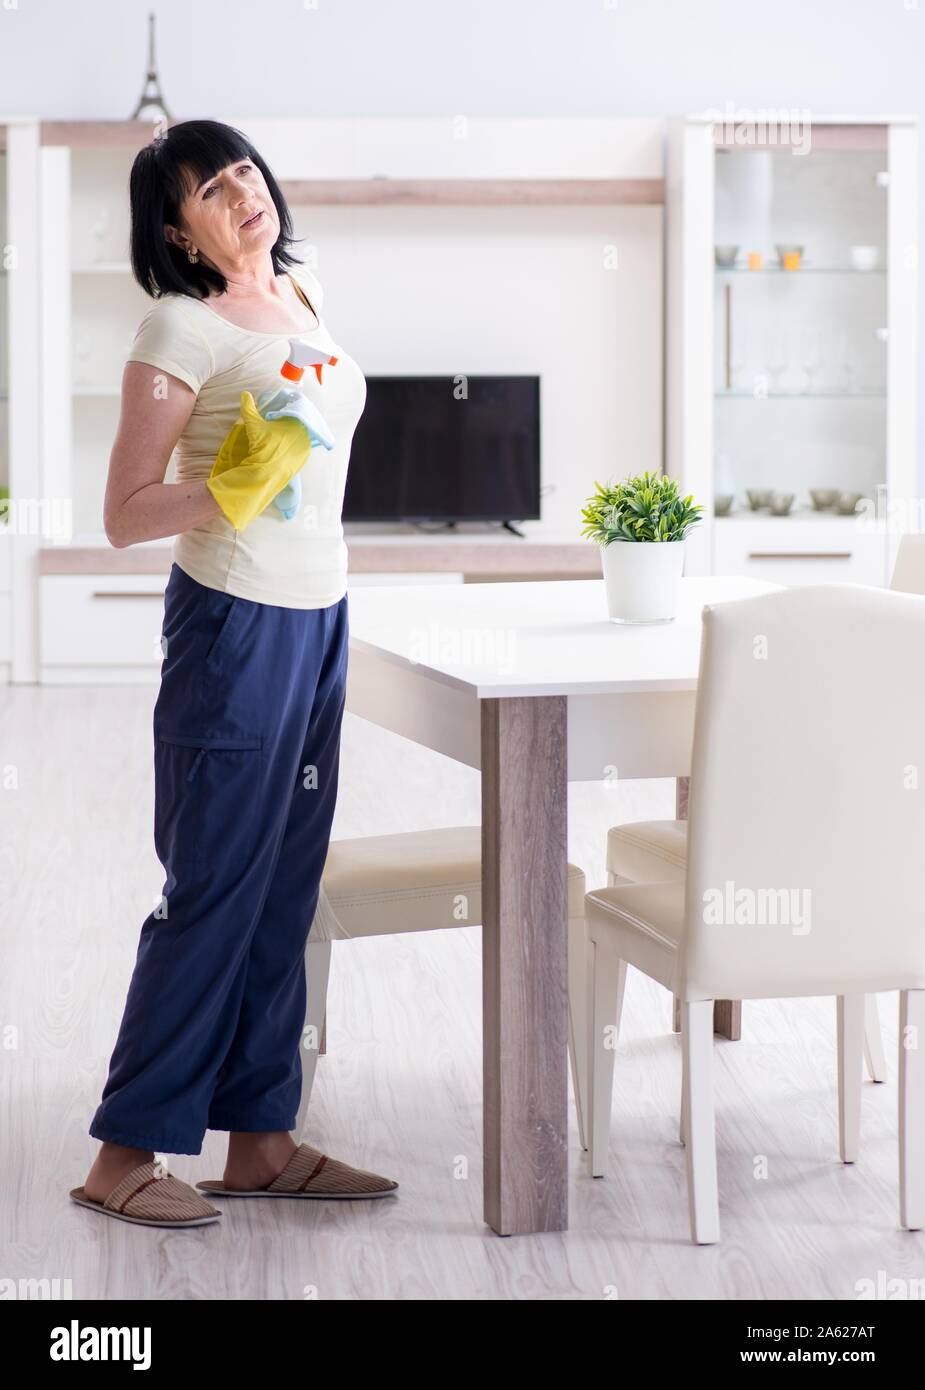 The Old Mature Woman Tired After House Chores Stock Photo